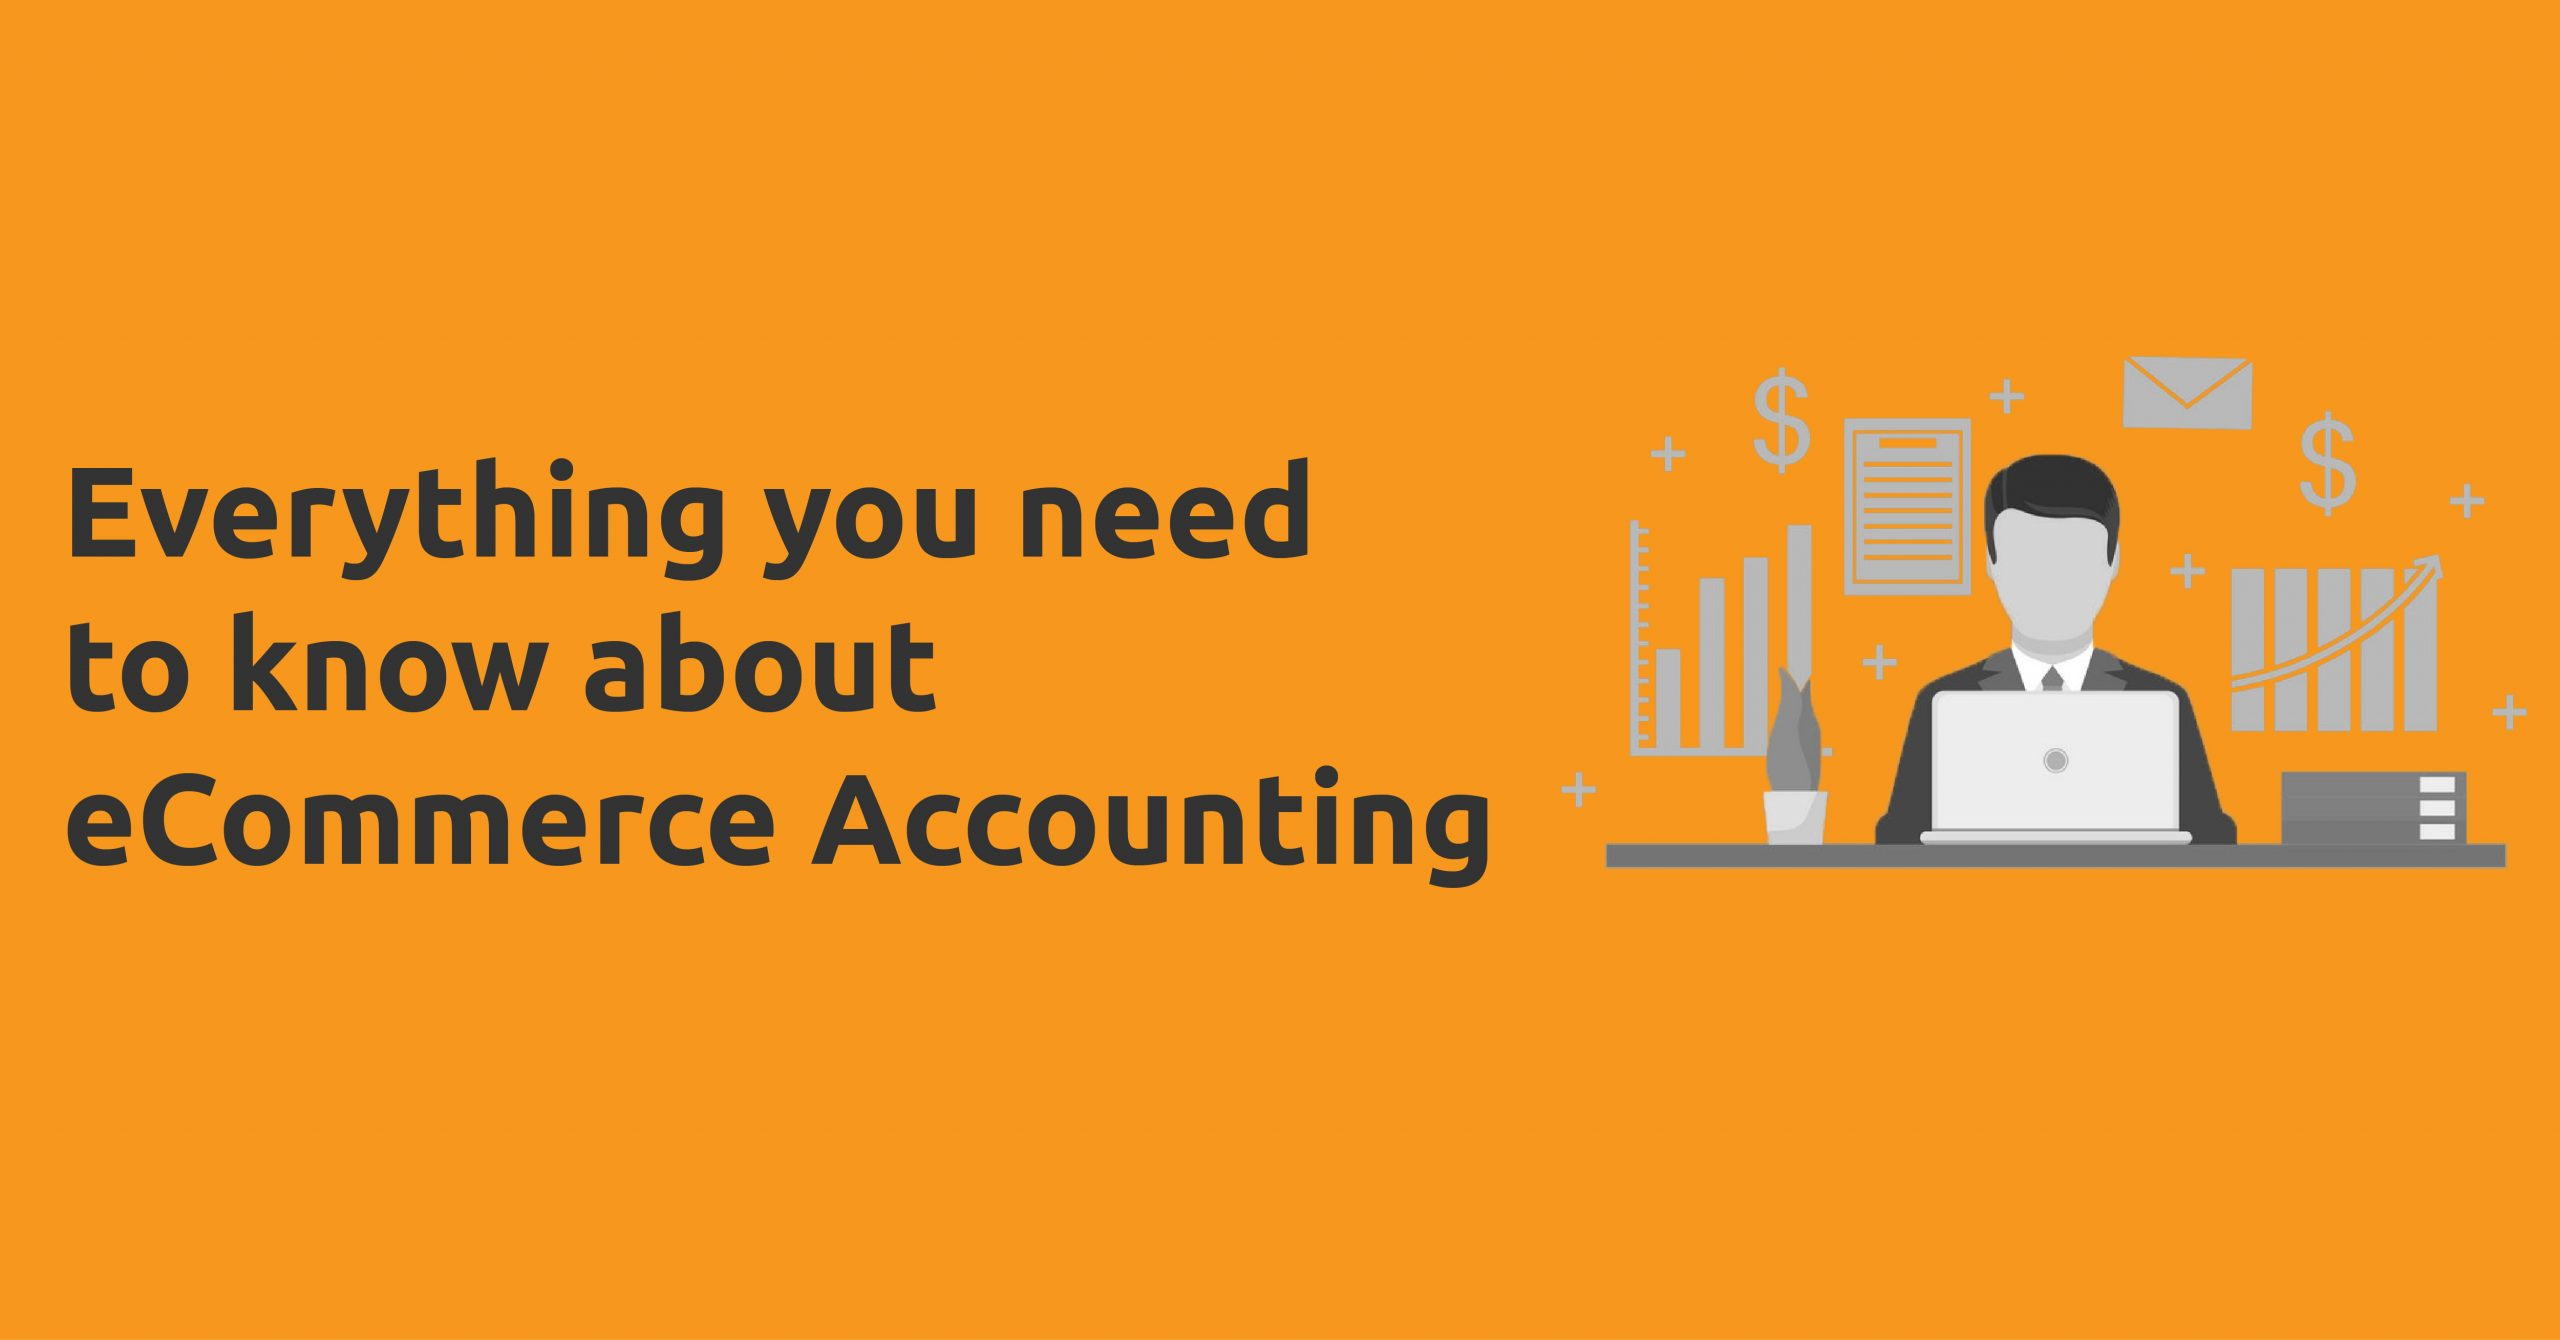 ecommerce-accounting-sellersupport